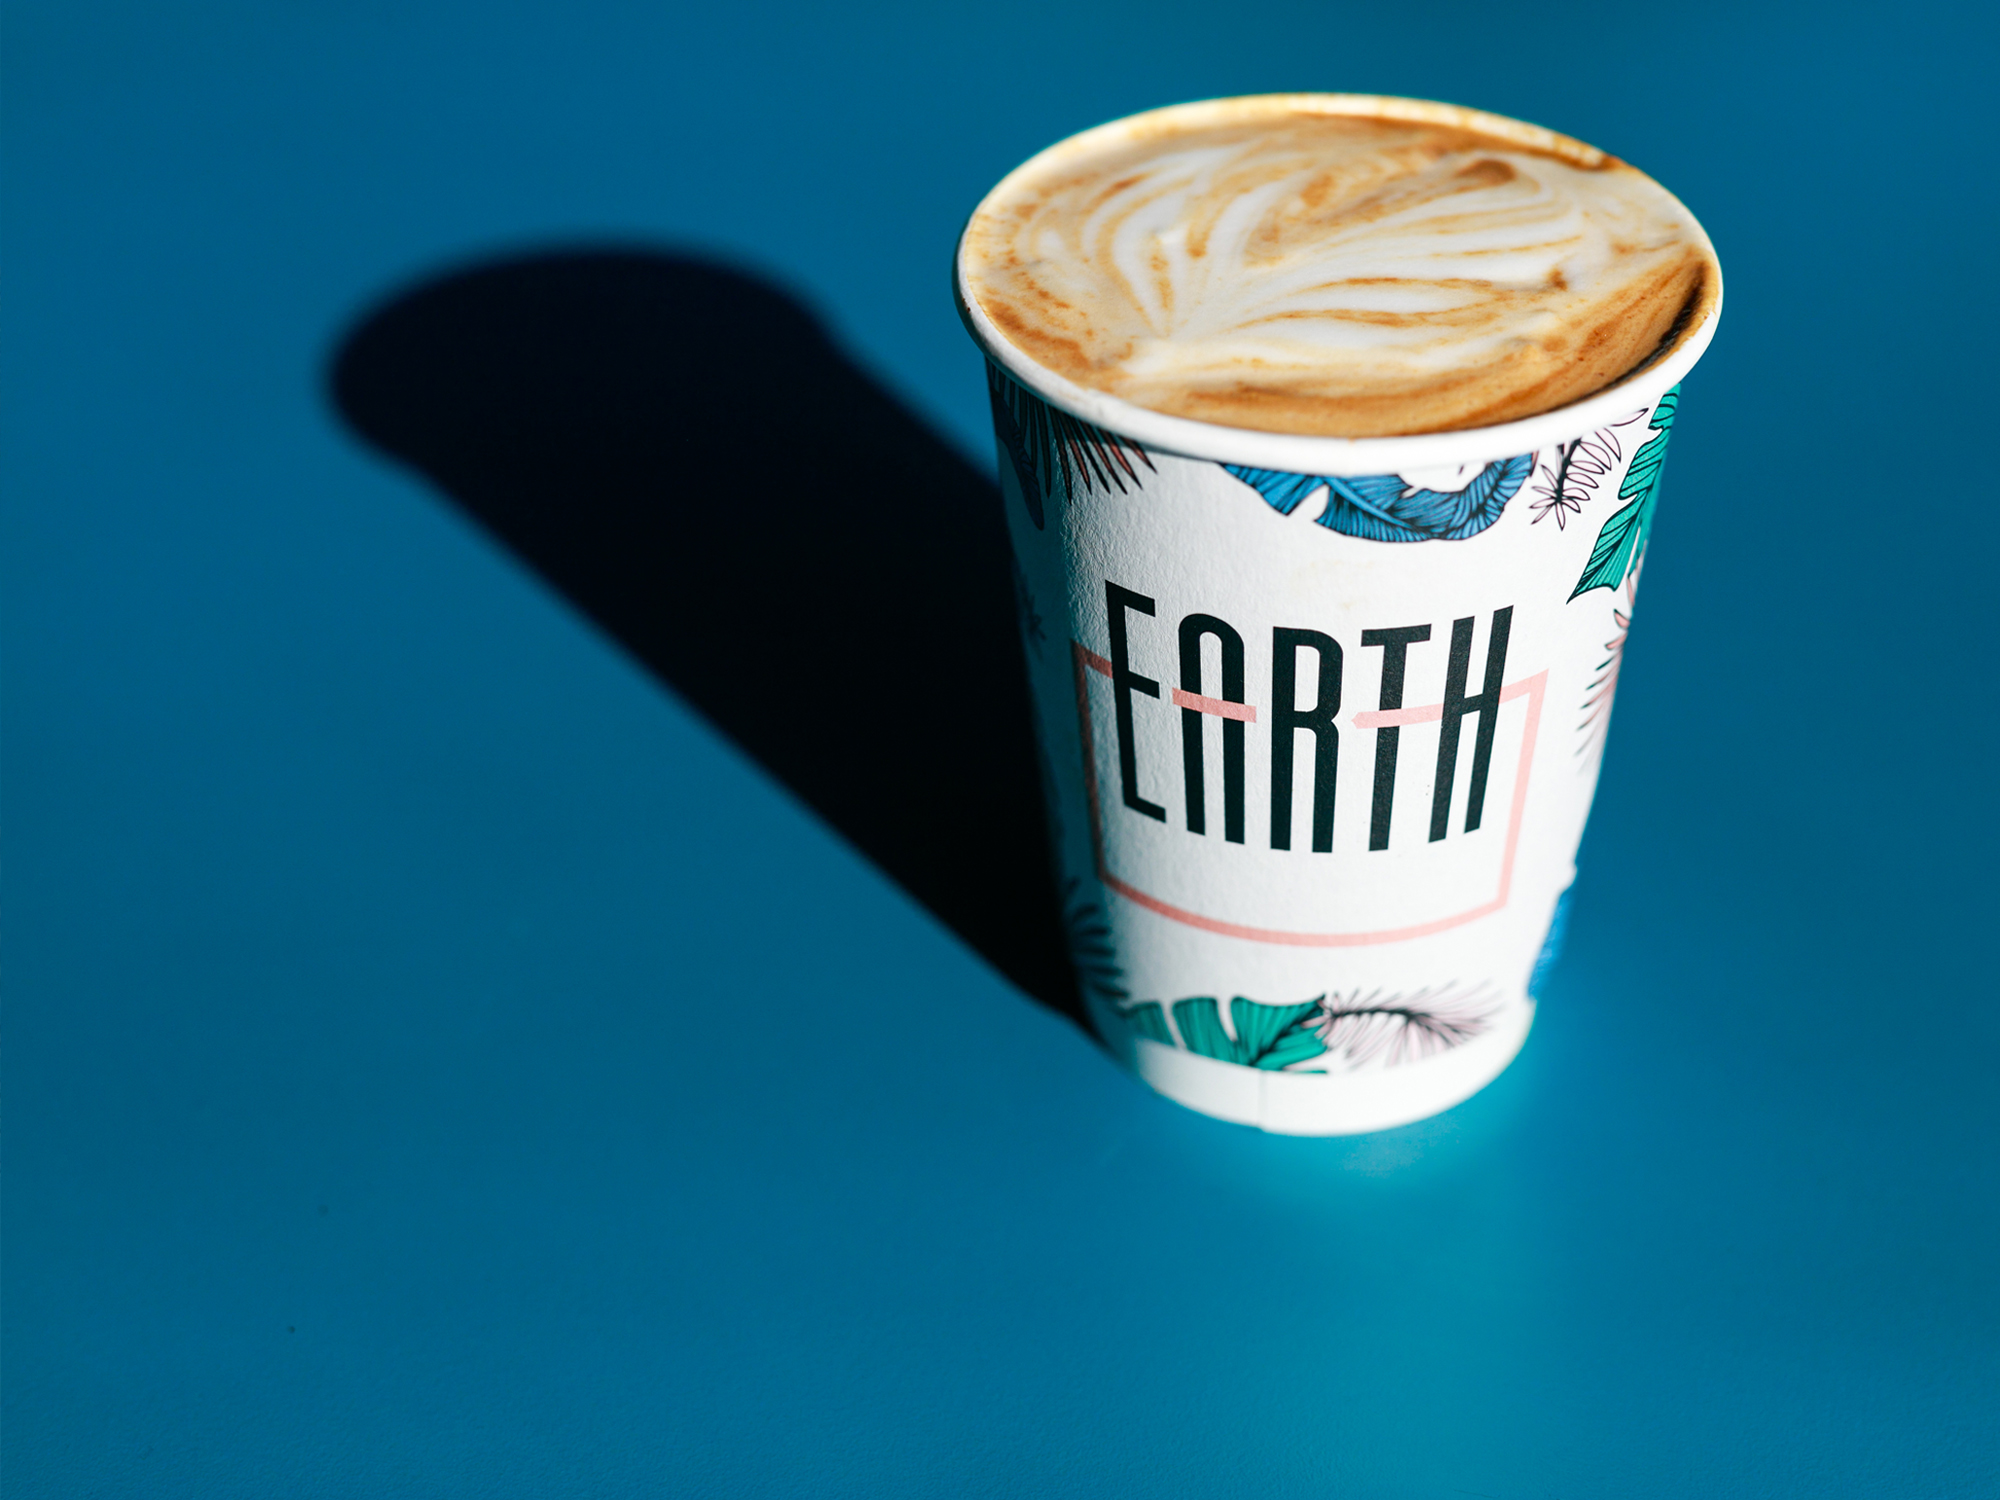 Cover image: Earth